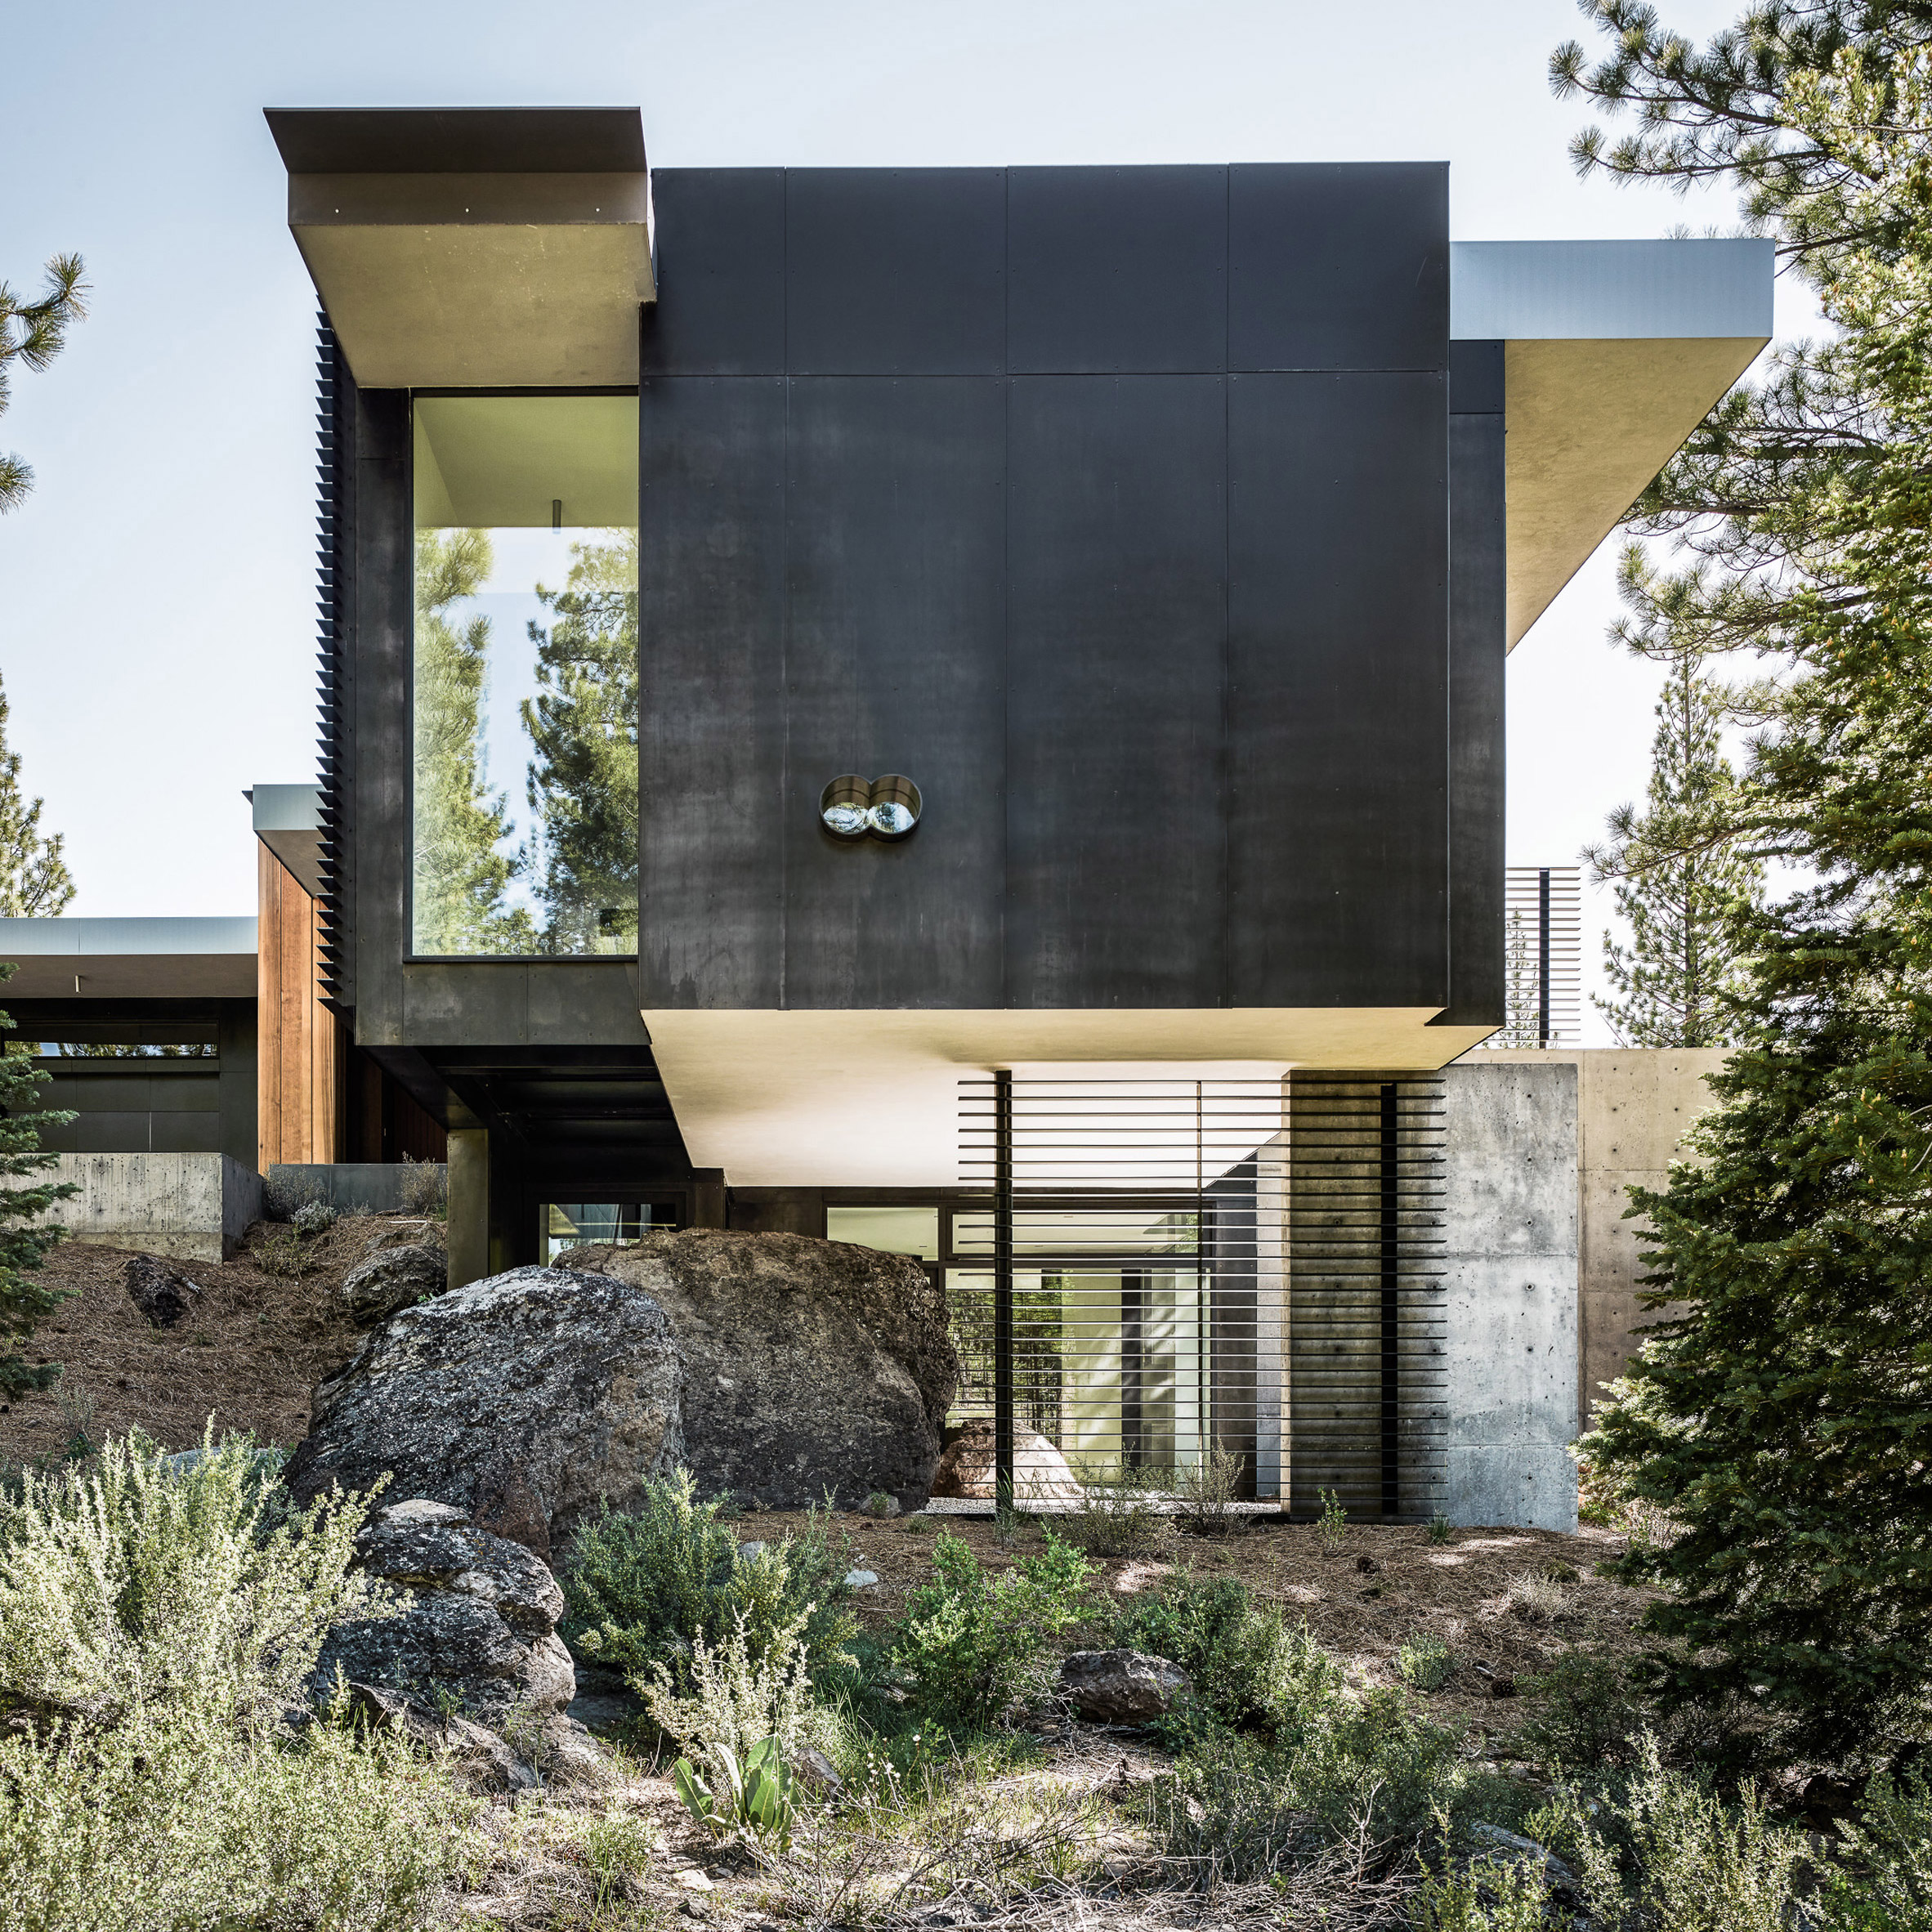 Creek House By Faulkner Architects Preserves Boulders On Steep Site